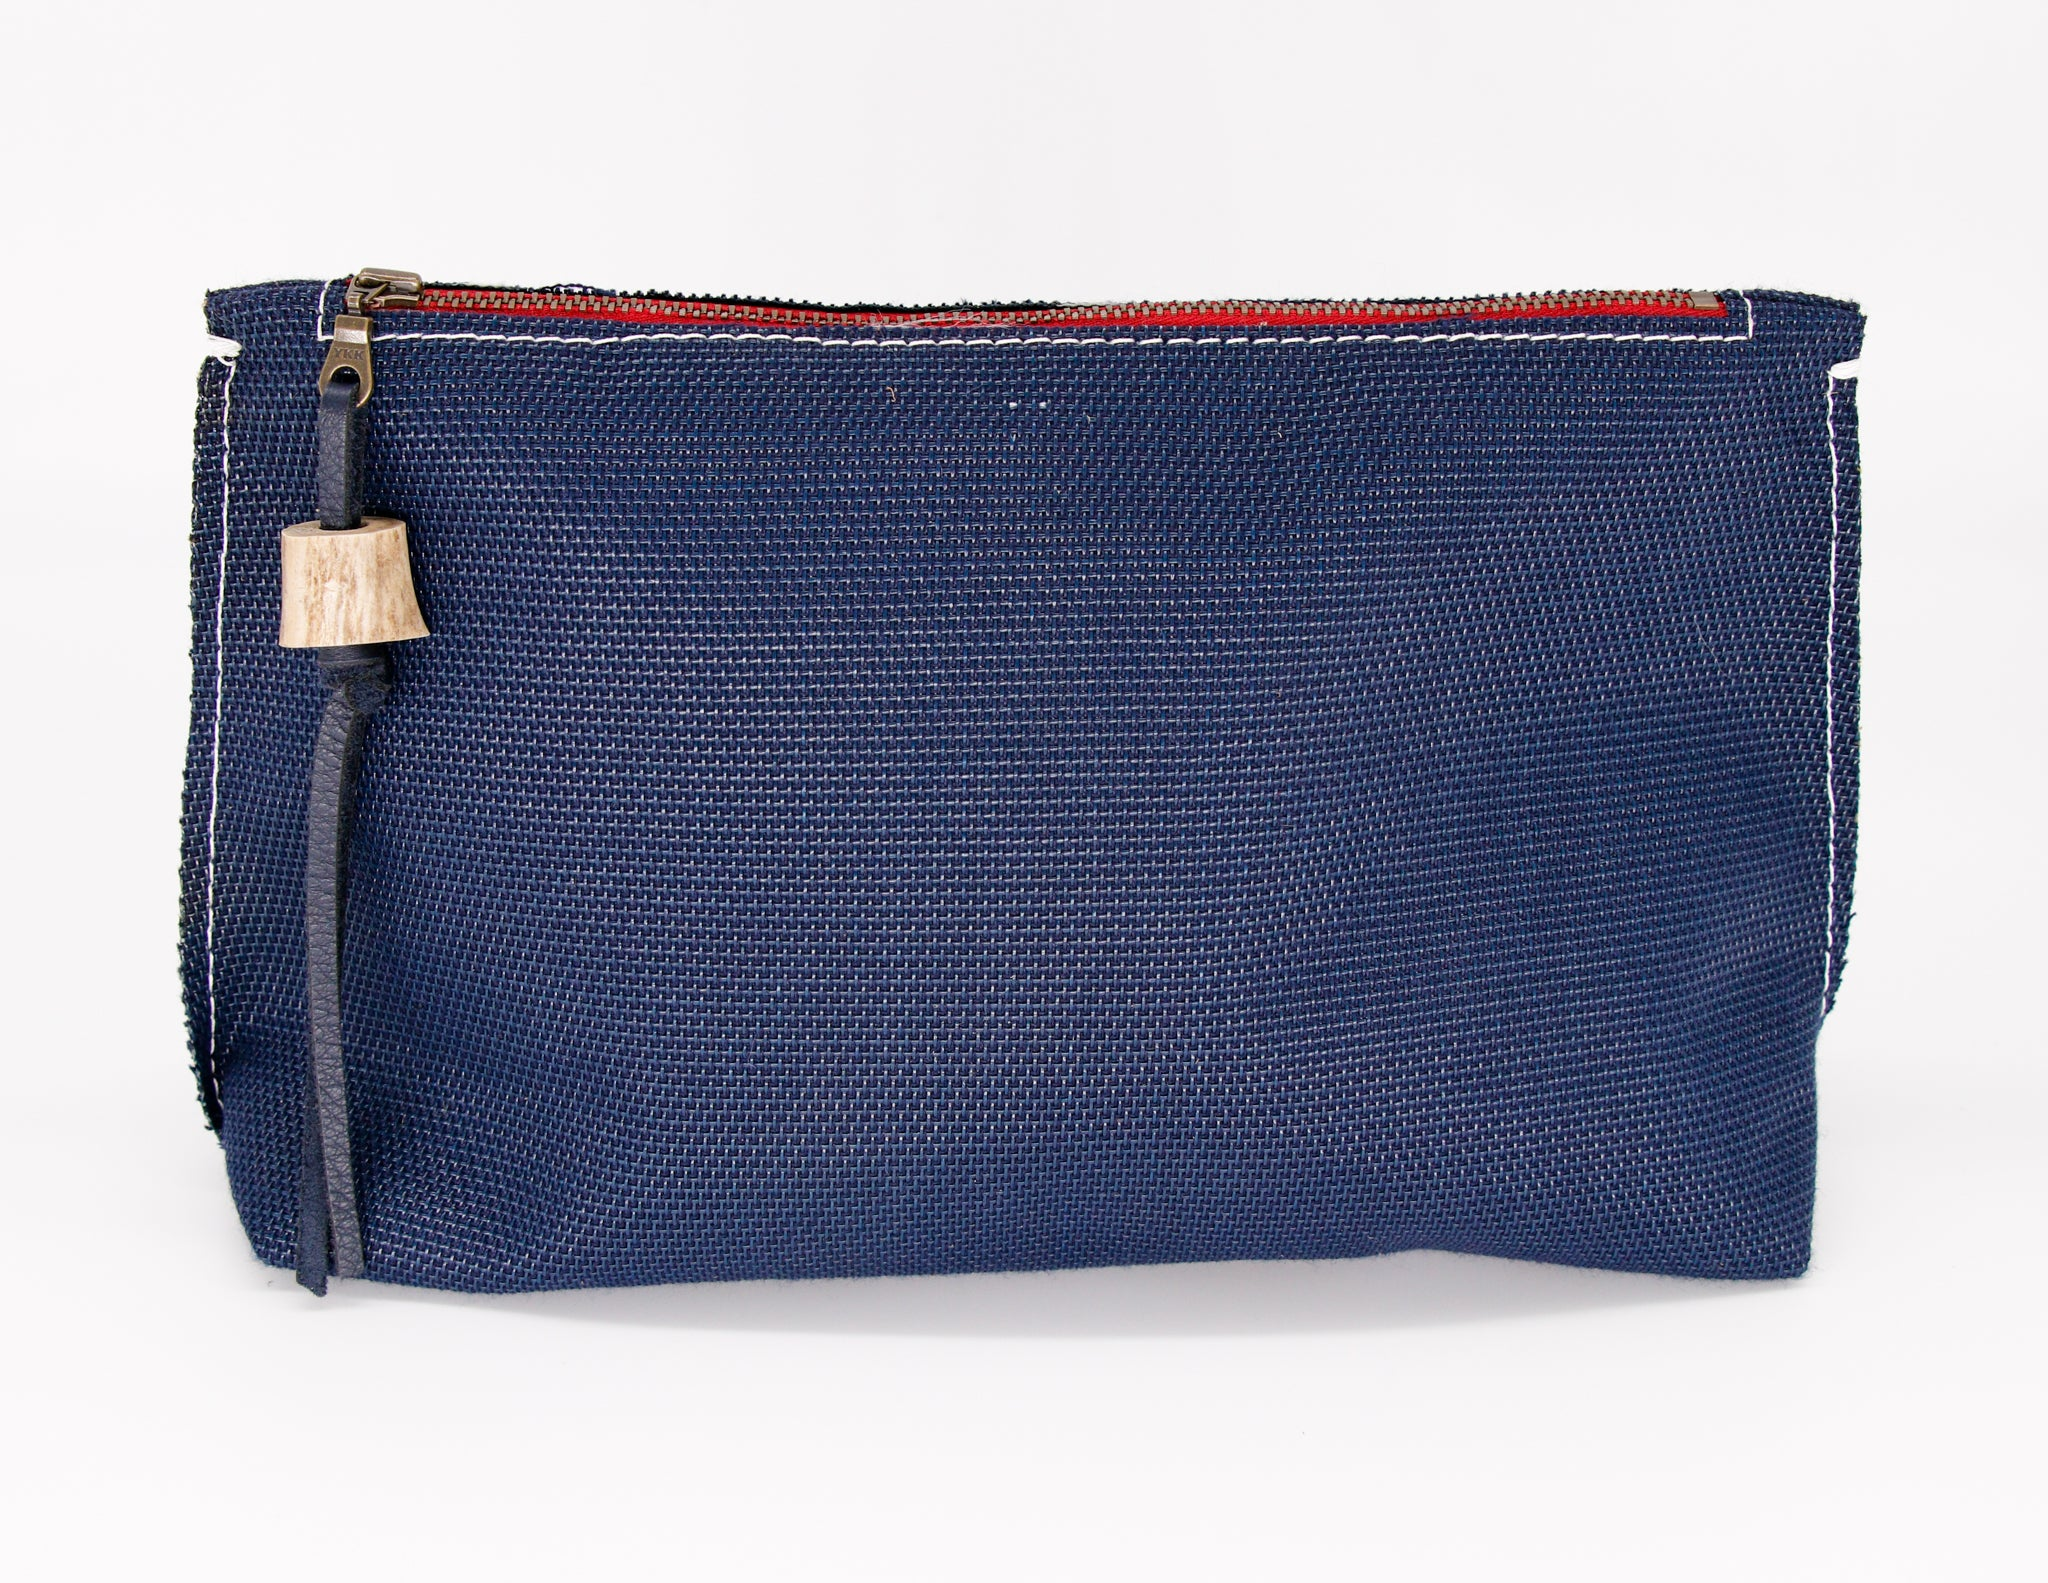 Navy large clutch